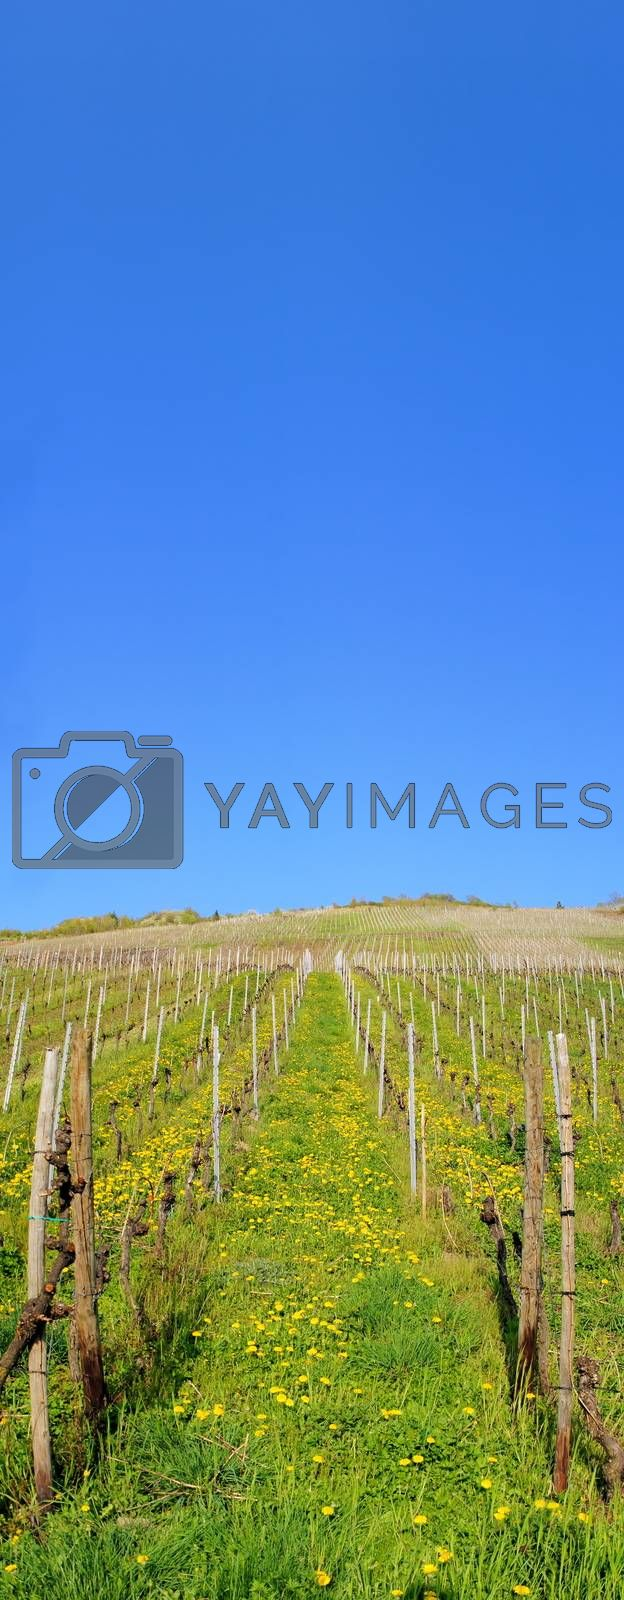 Royalty free image of Vineyard up to the sky by azurin